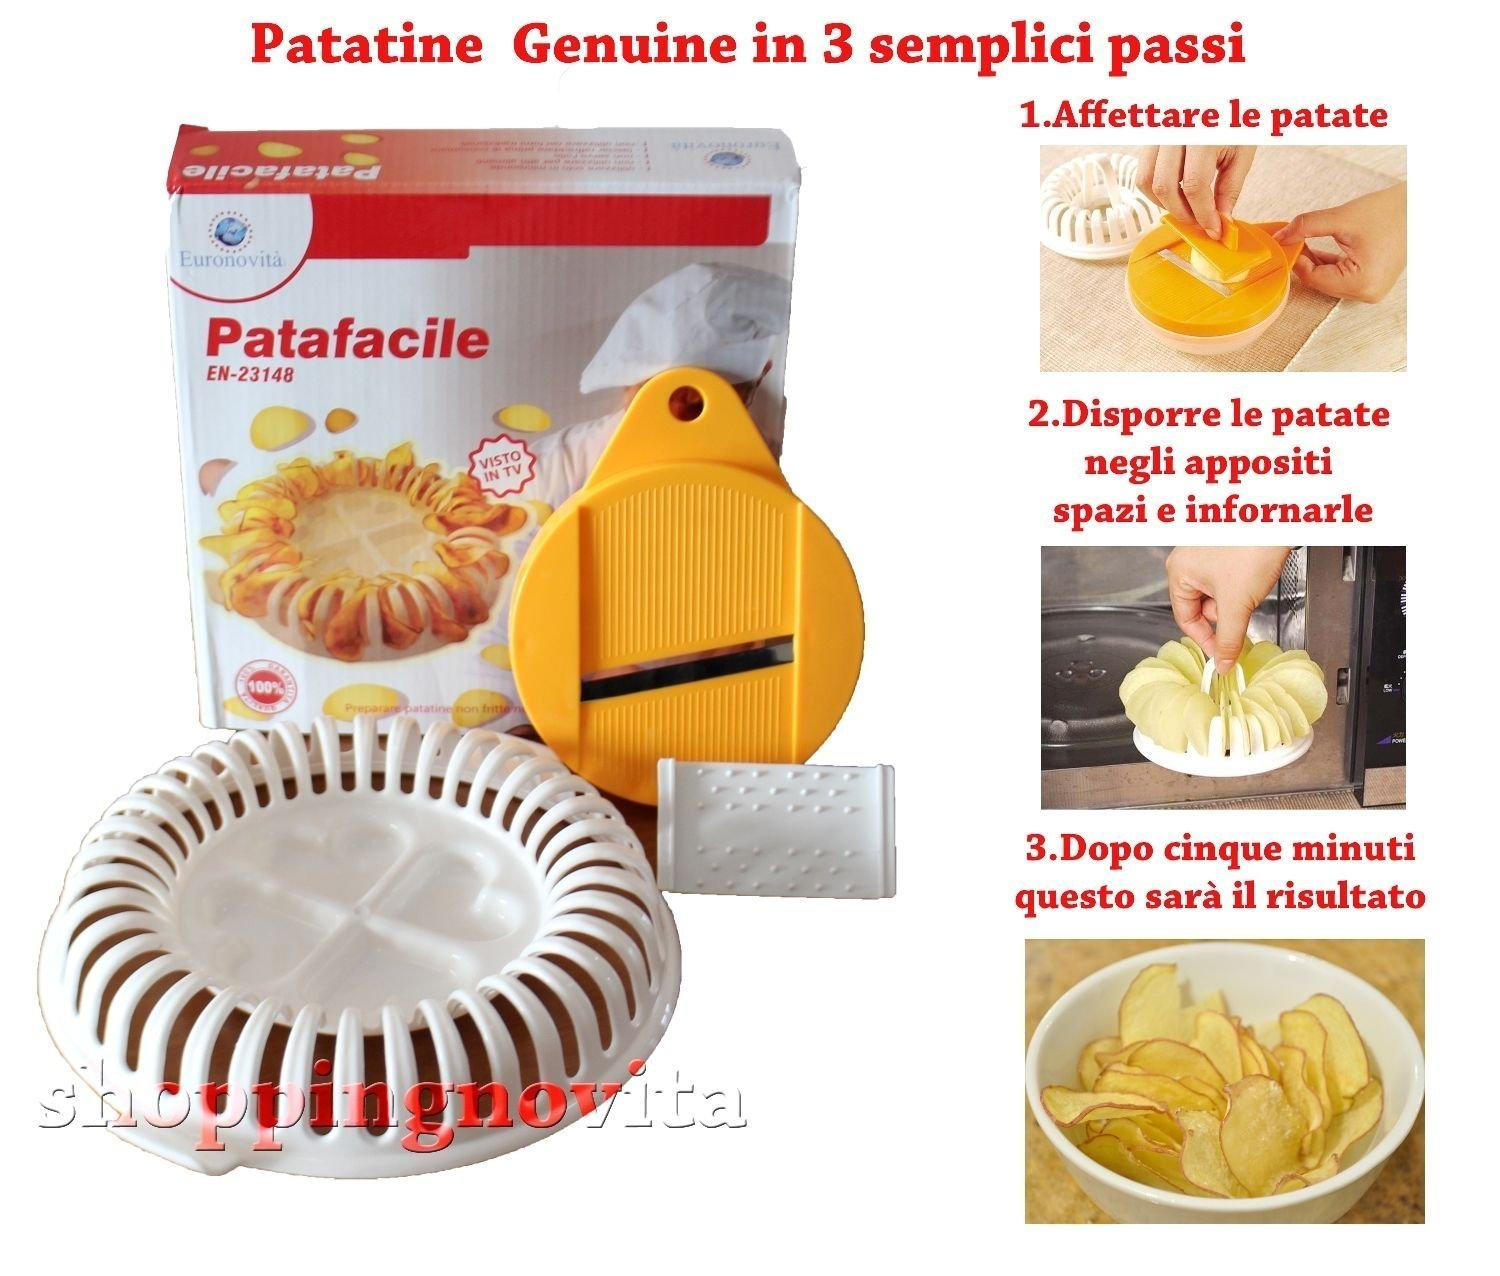 Euronovità Patafacile, Tool for Making Chips Chips Without Oils or Fat in Microwave Euronovità Srl EN-23148